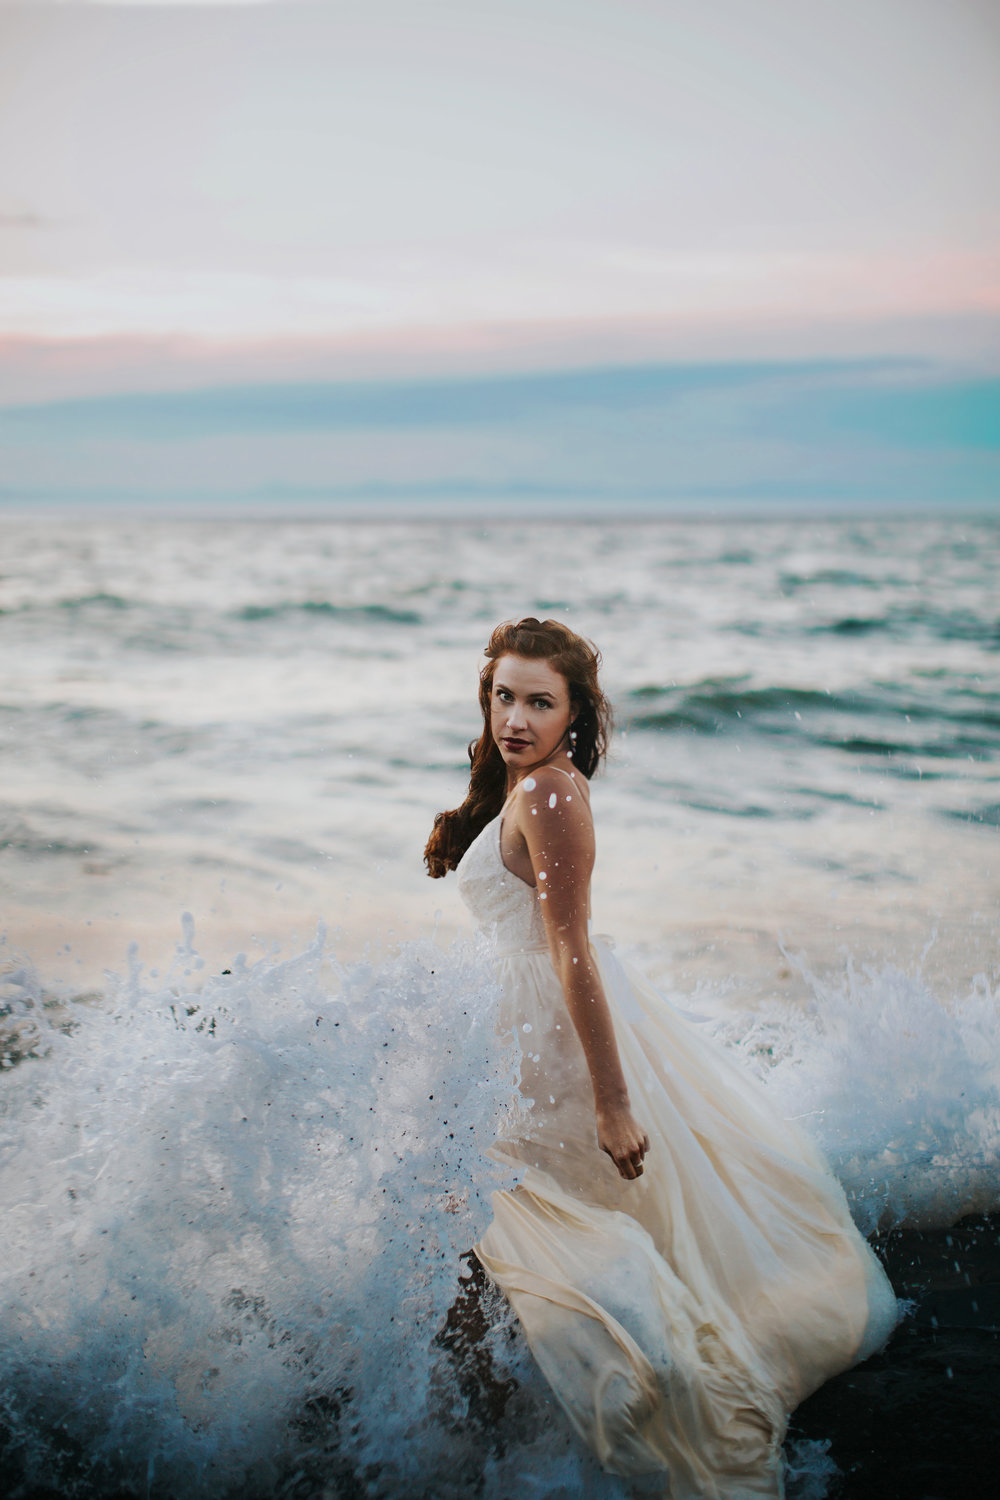 Port-Angeles-Photographer-Olympic-Peninsula-Wedding-Ediz-Hook-bride-dress-Kayla-Dawn-Photography-Olympic-Peninsula-PNW-Photographer-Portrait-Portraiture-Natural-Golden-Hour-Beach (17).jpg